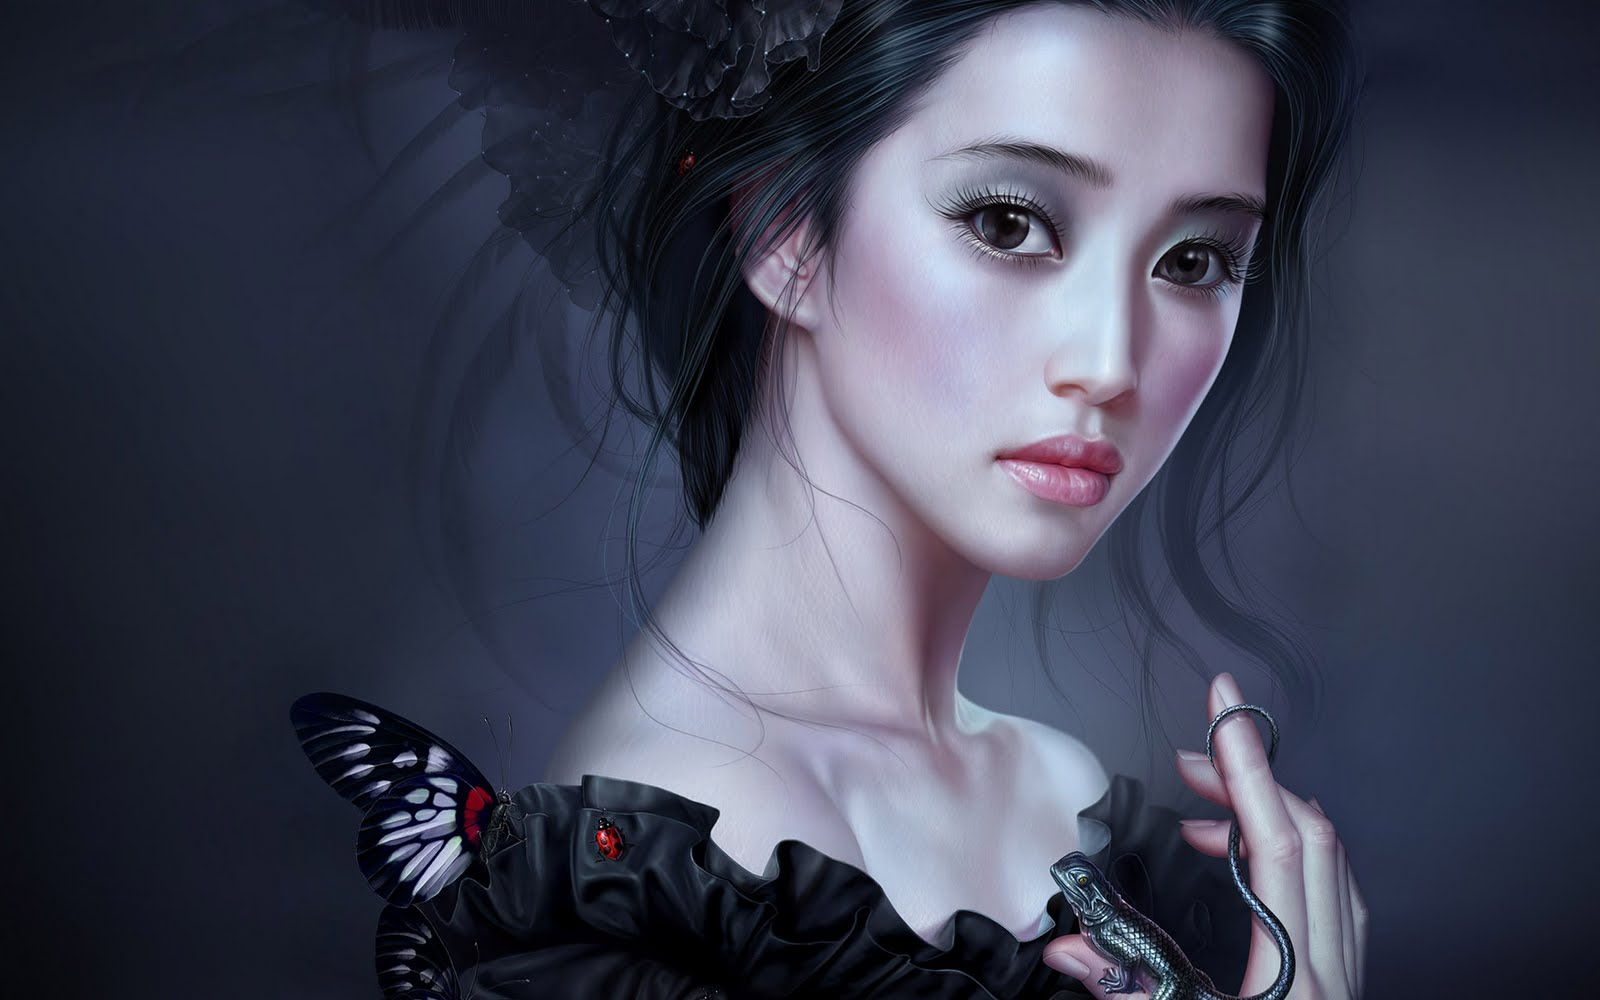 Japanese Girl Fantasy Wallpaper Asian With